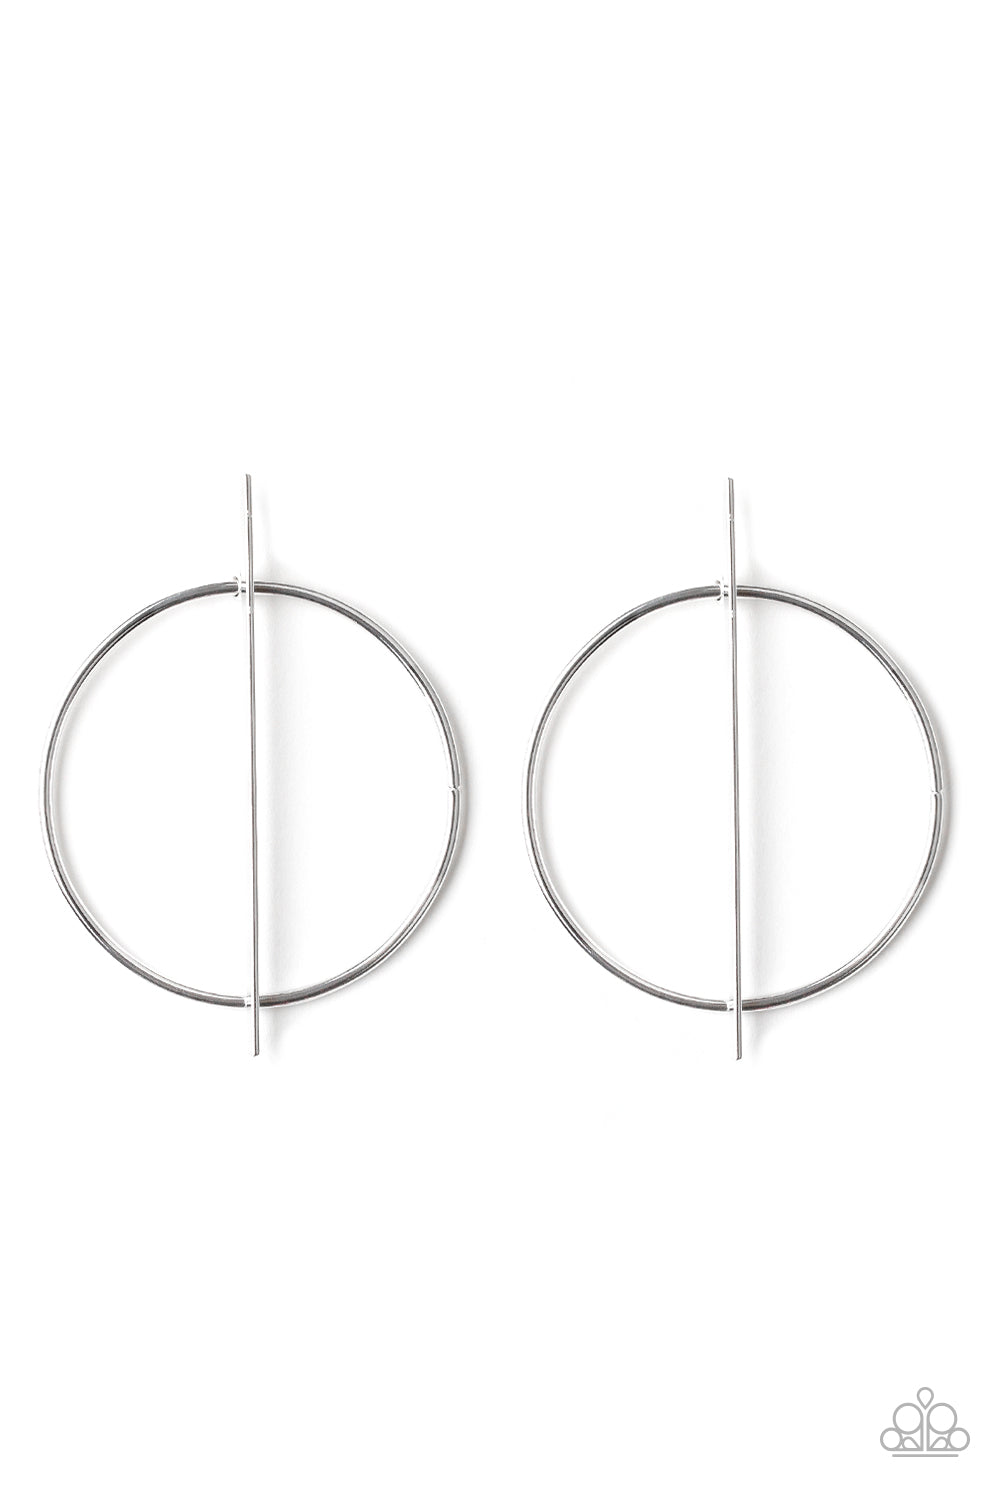 Vogue Visionary - Silver Hoop Earring - The Paparazzi Fox